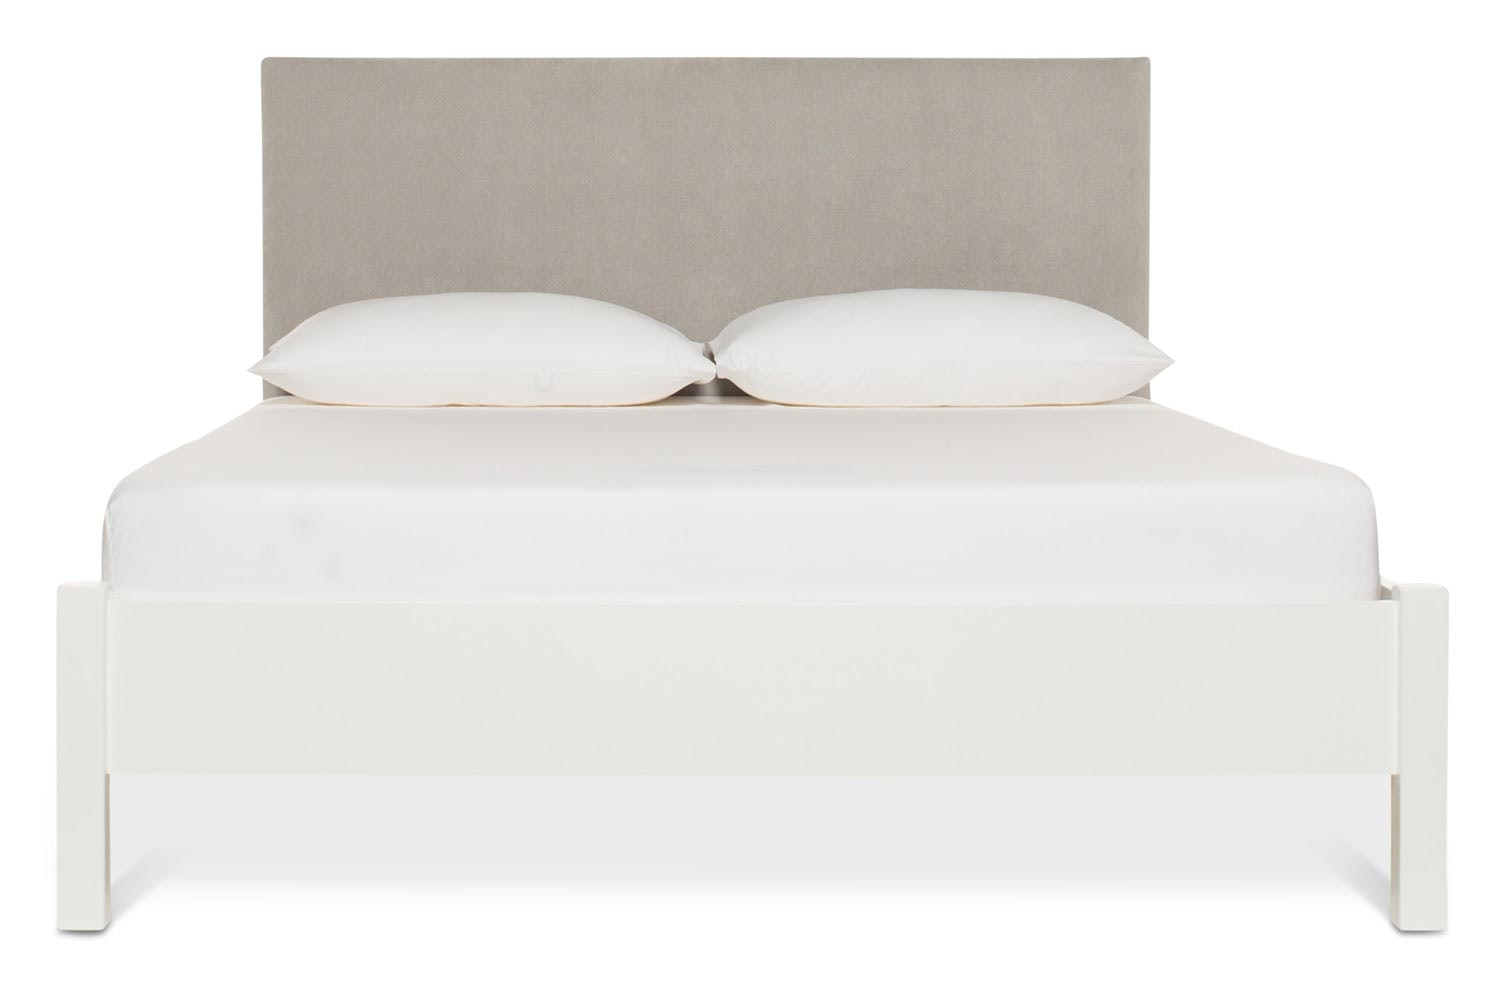 Emily Loft White Bed Frame | 5FT | Dylan Headboard Silver